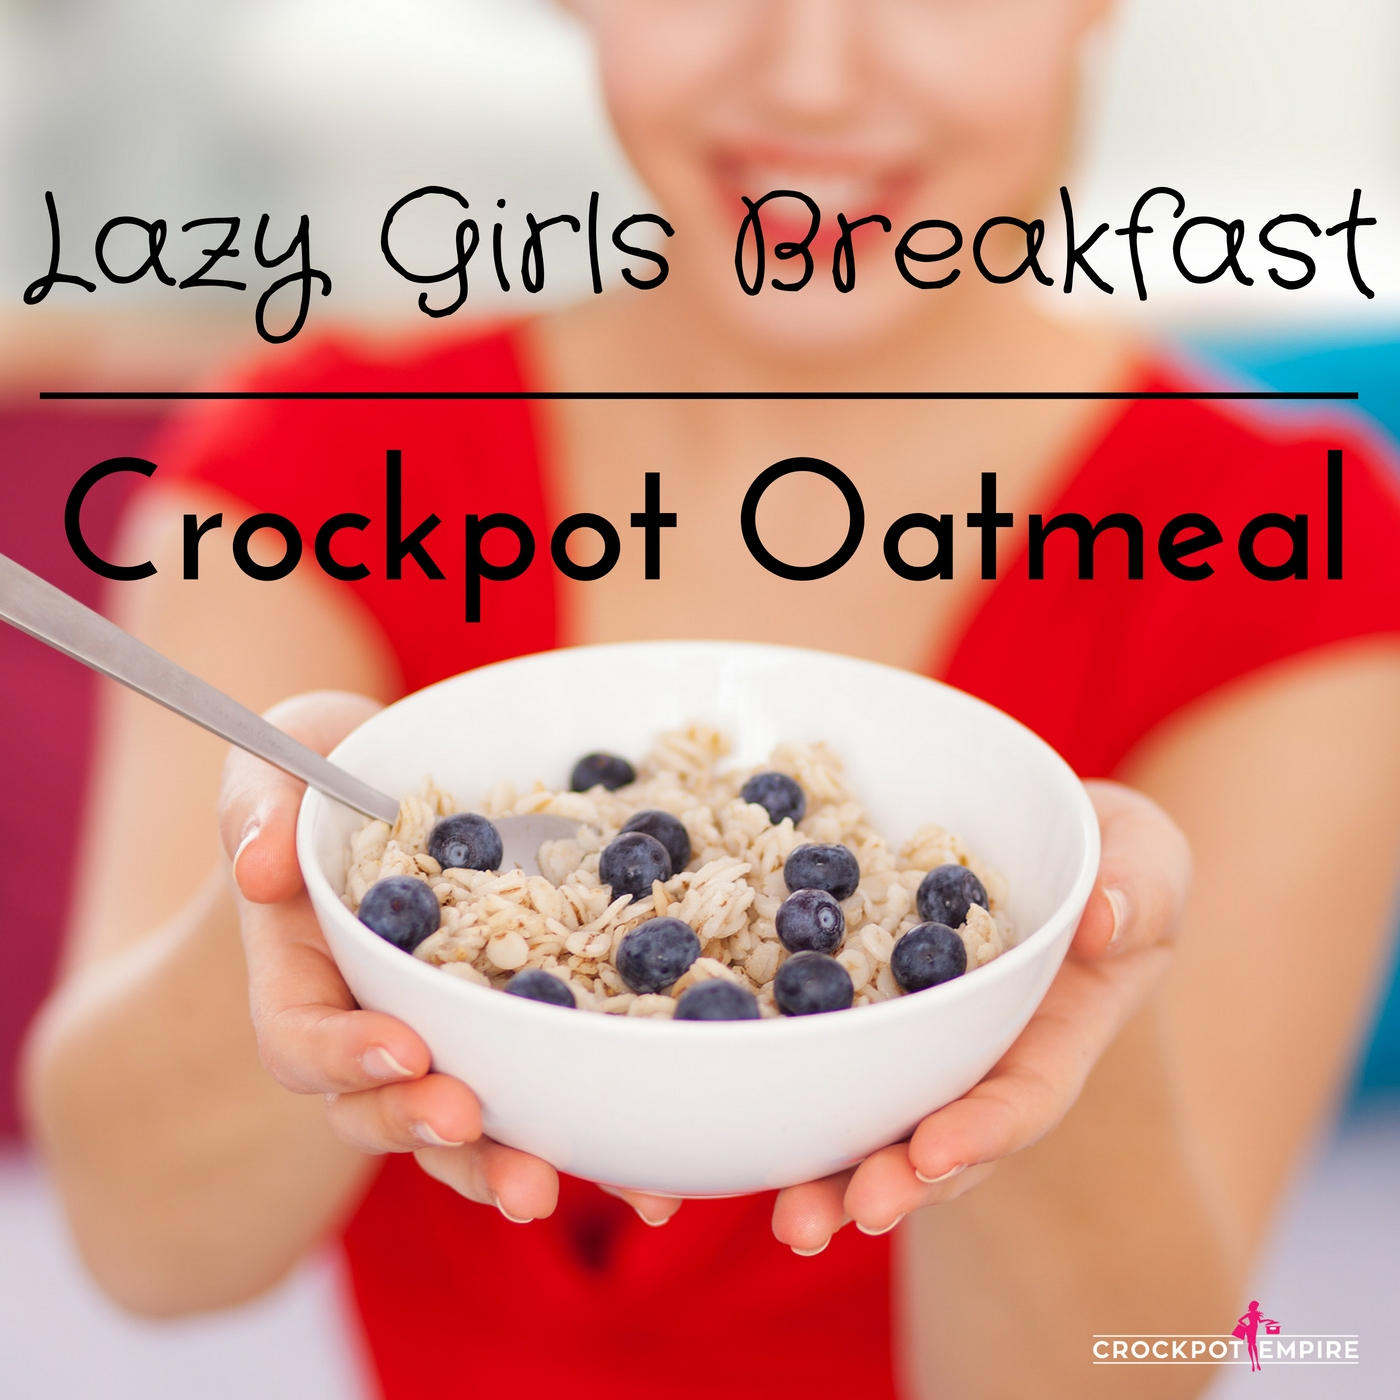 Crockpot Oatmeal using steel oats overnight - Crockpot Empire